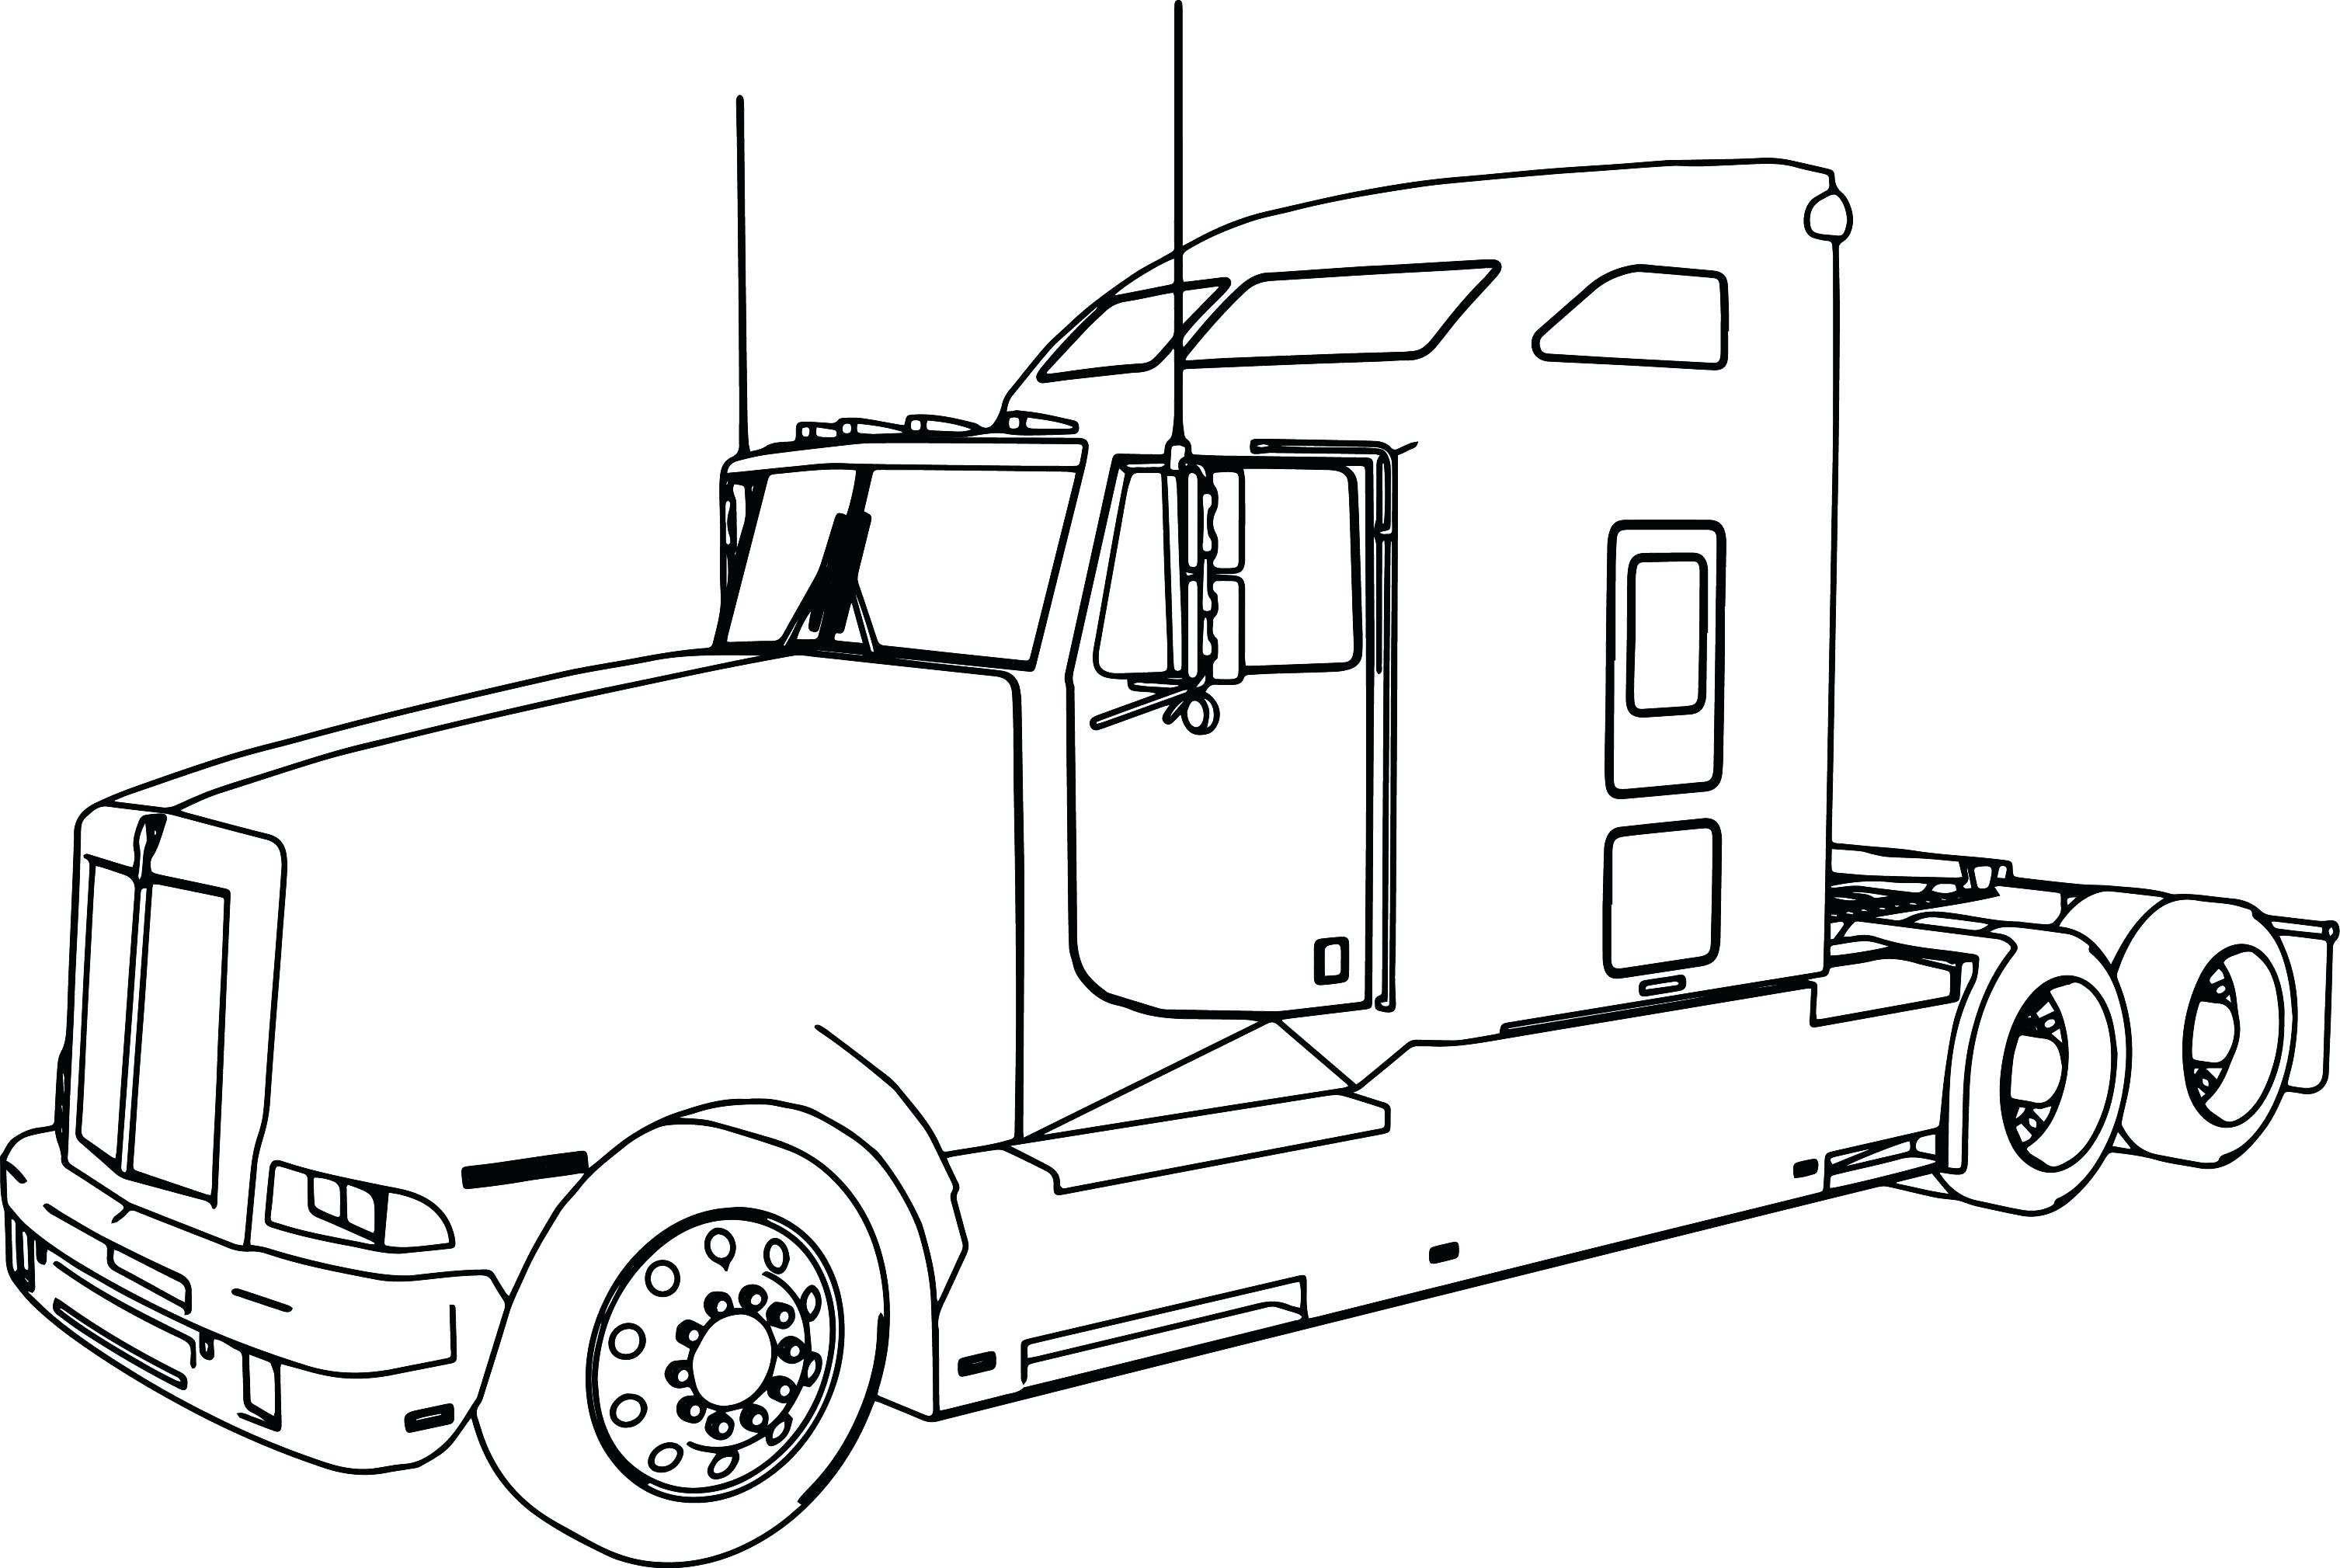 Trailer truck drawing at free for for Free truck coloring pages